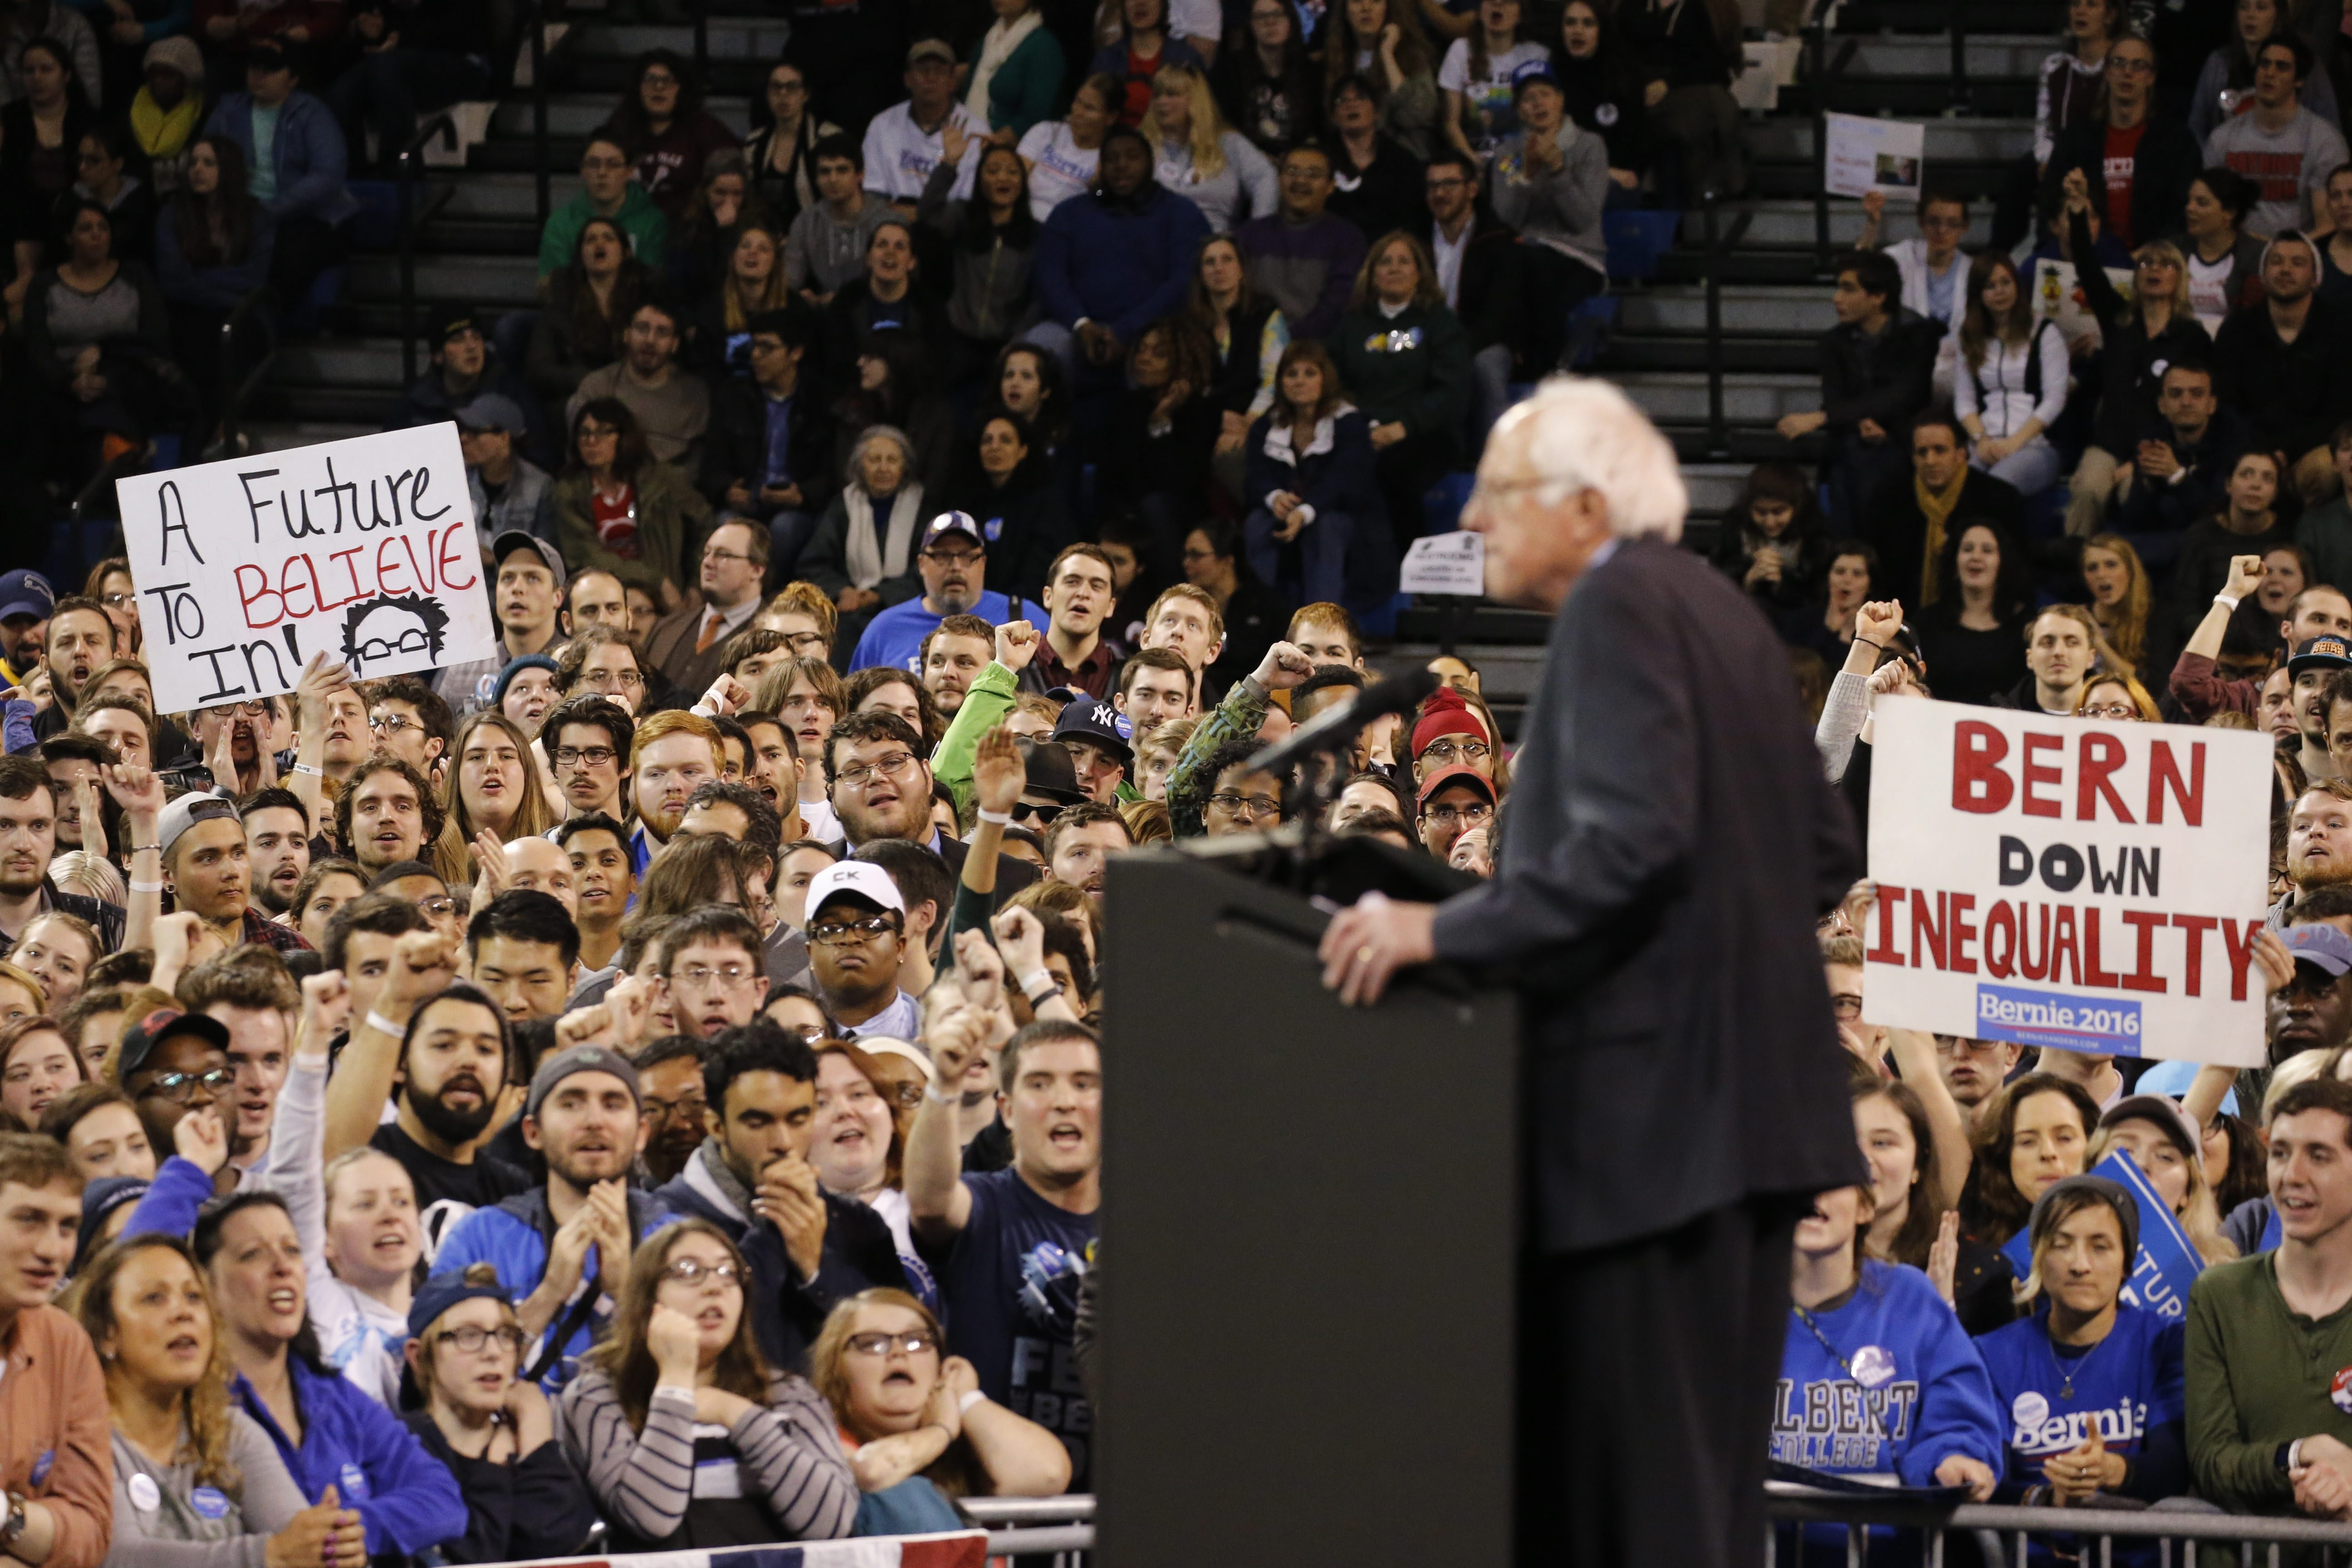 Sen. Bernie Sanders of Vermont speaks to thousands of his supporters during a campaign rally at the University at Buffalo's Alumni Arena on April 11, 2016.